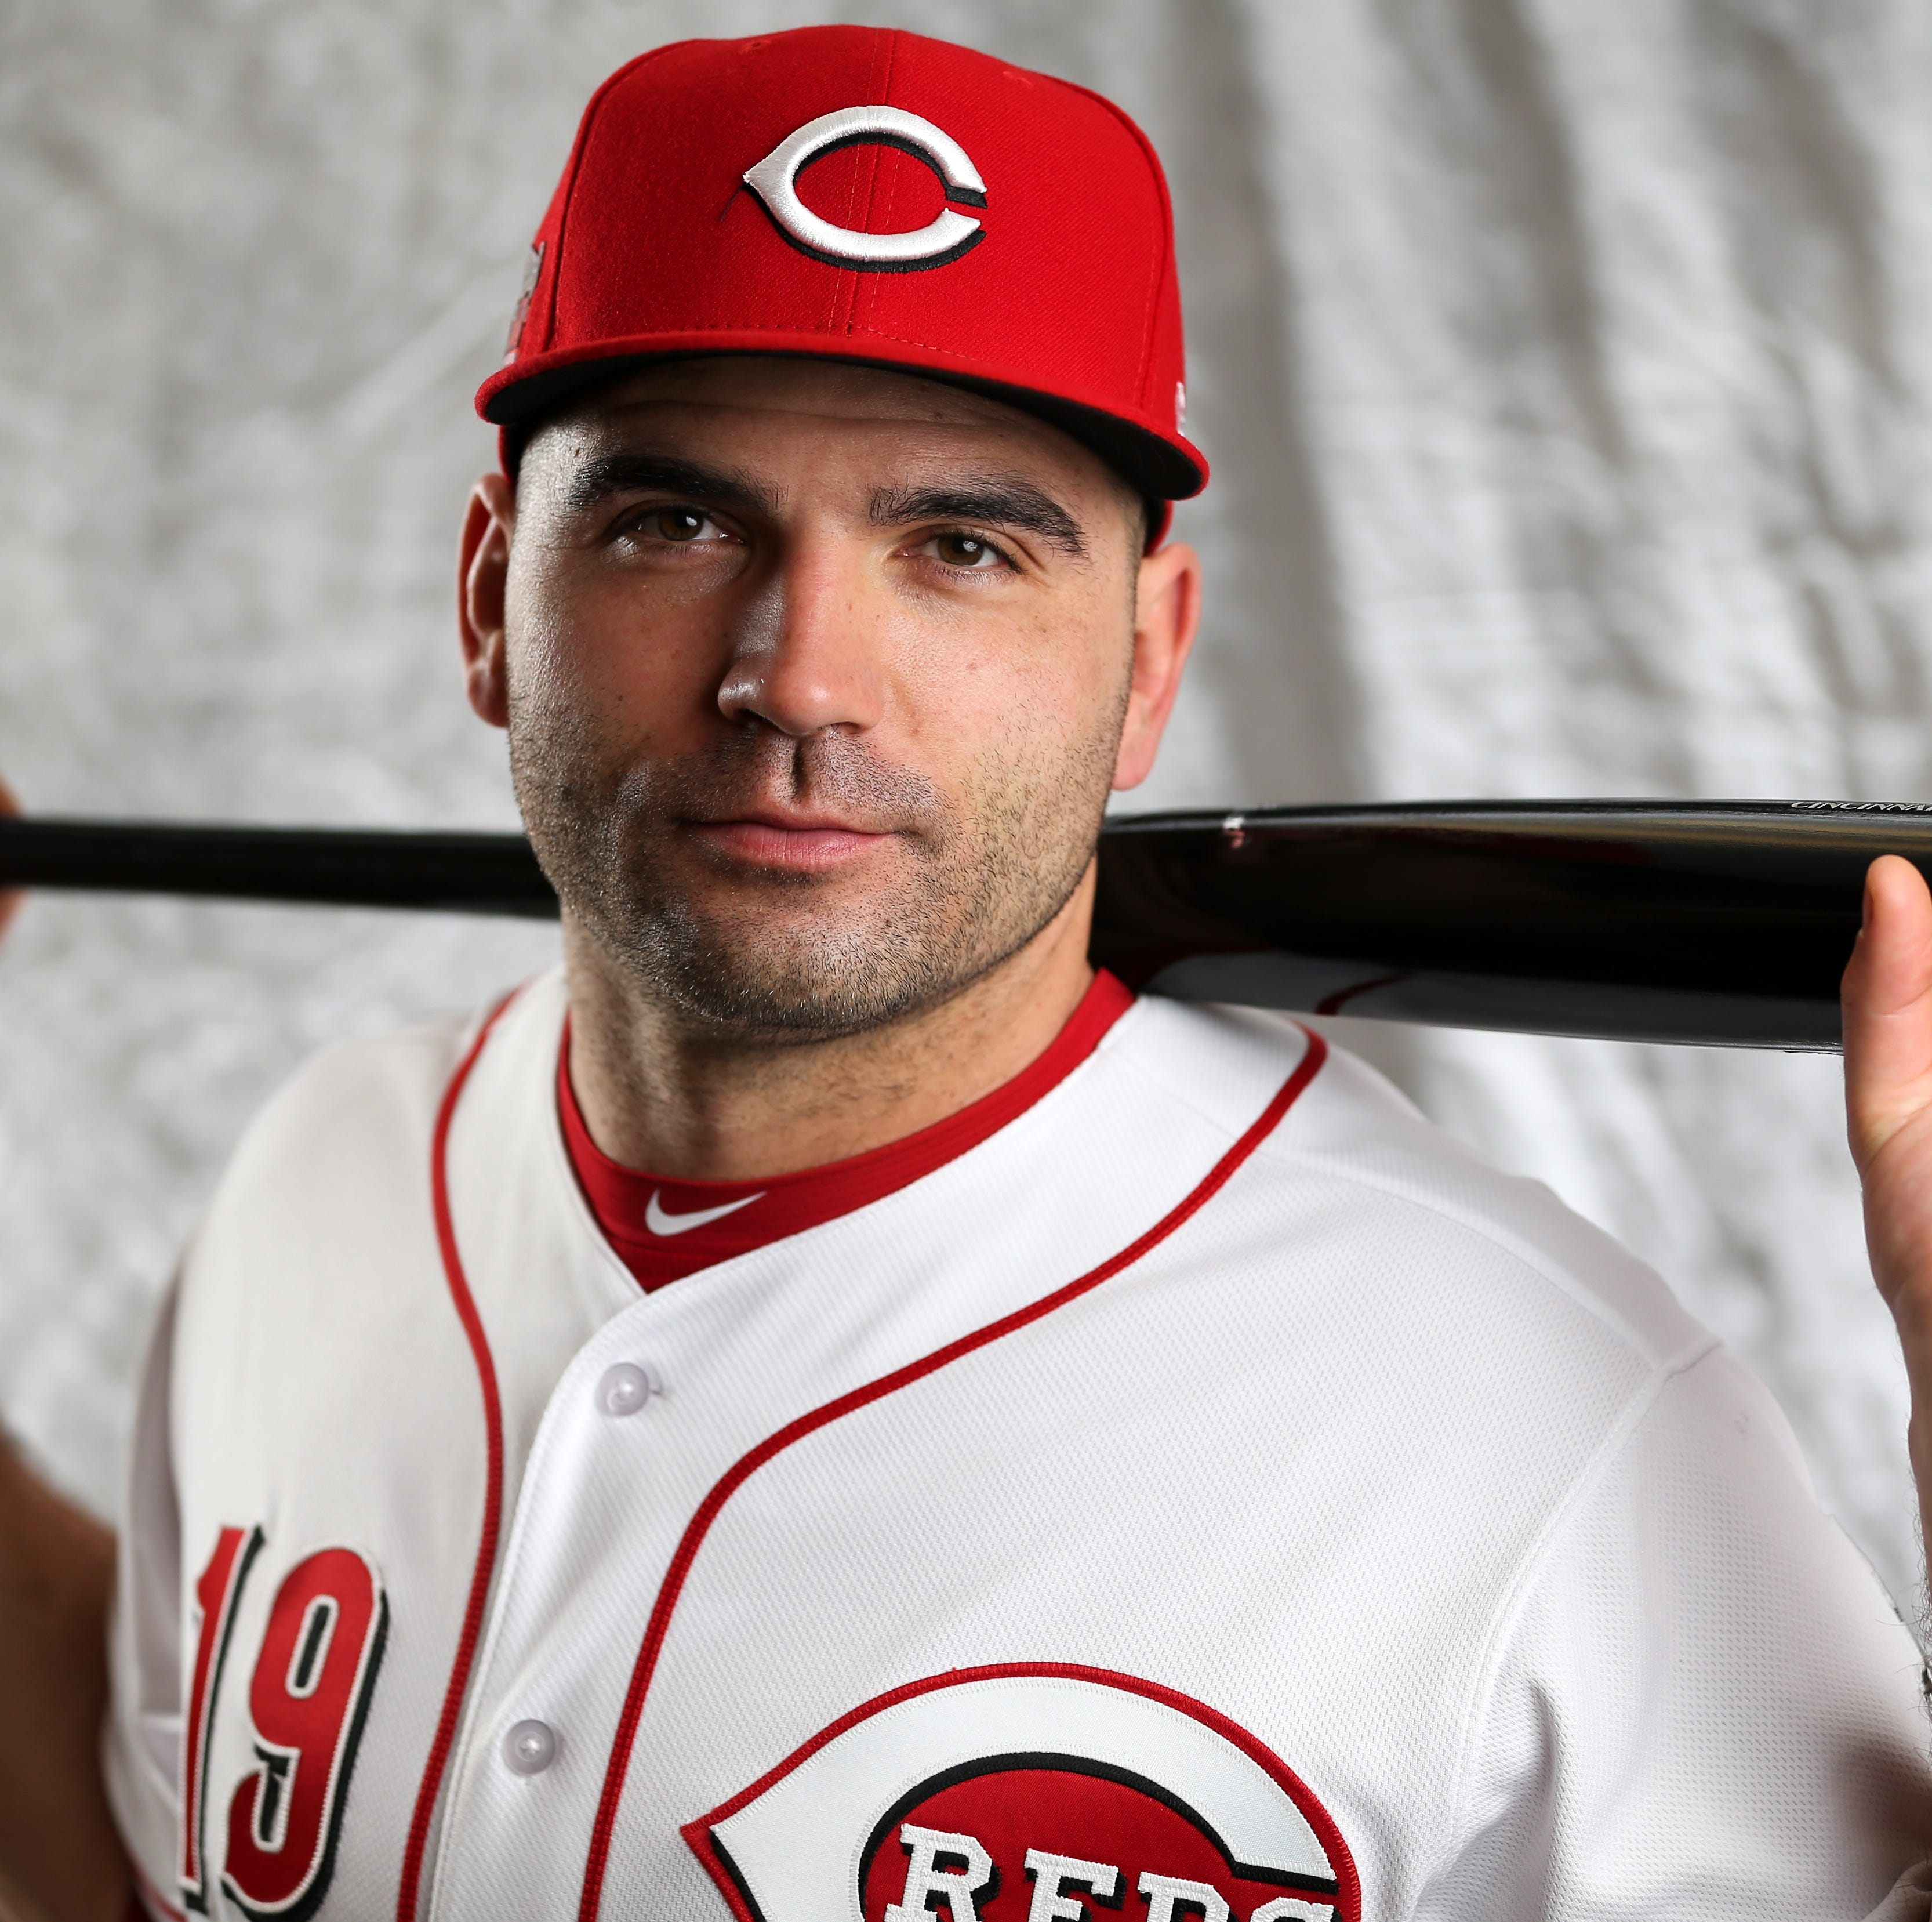 Doc's TML: Joey Votto leading off for the Cincinnati Reds isn't as crazy as it sounds